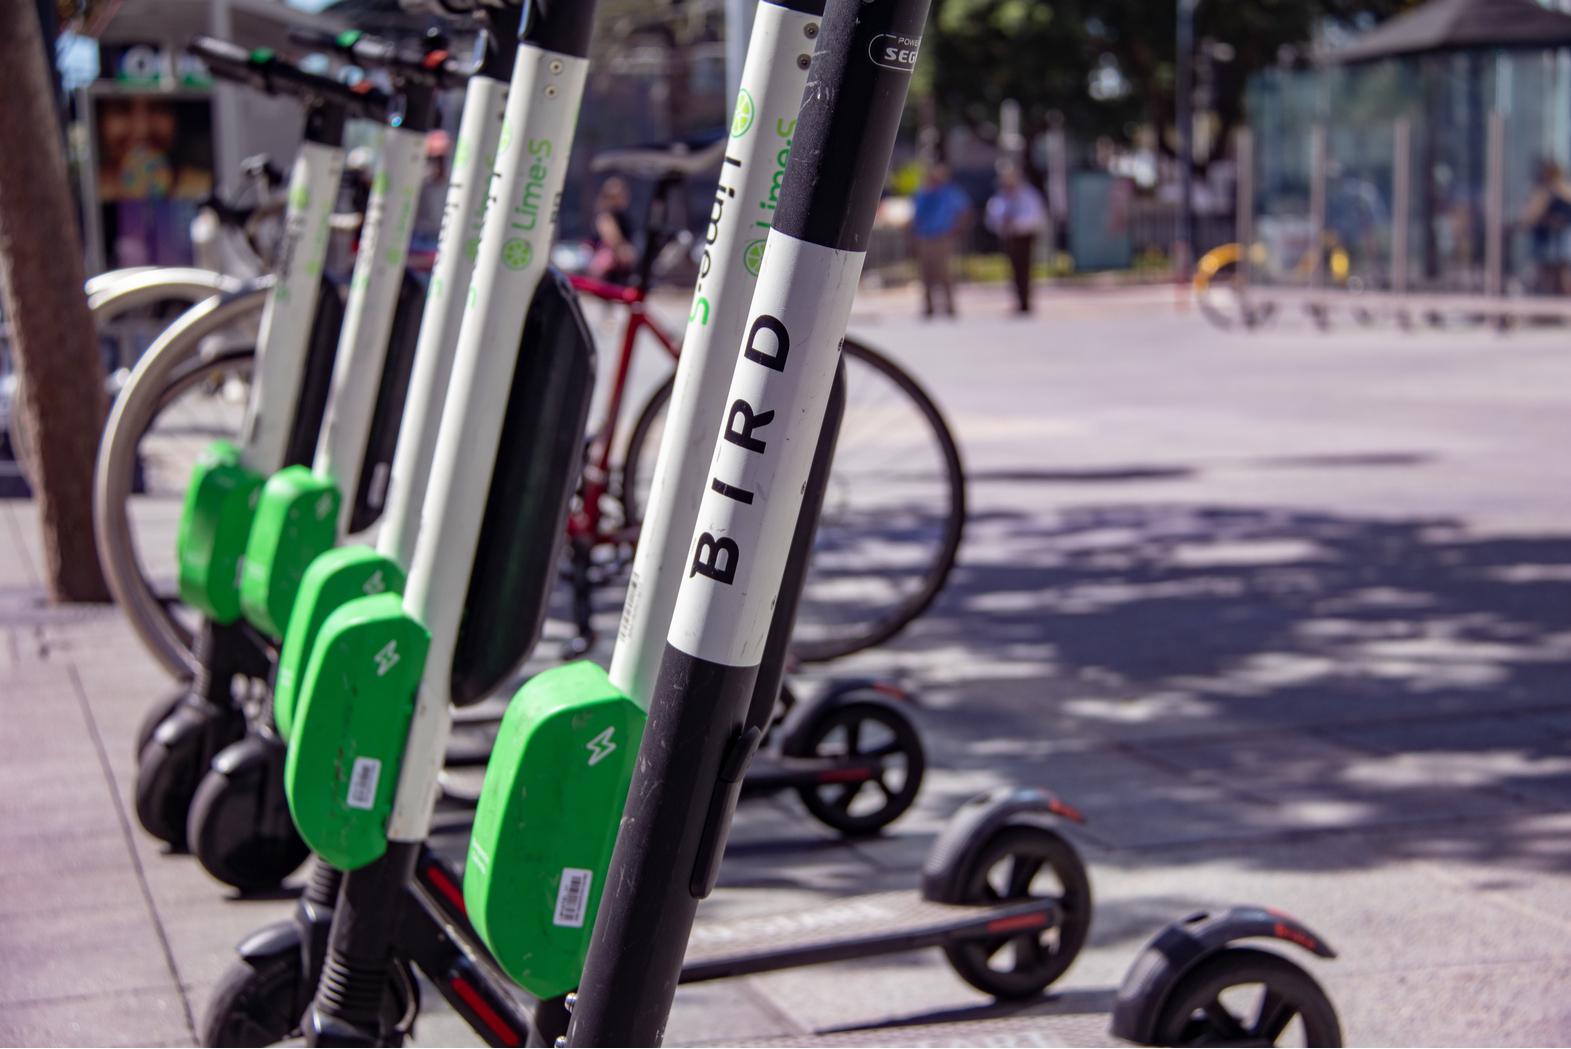 E-scooter wars: is there substance behind market domination?